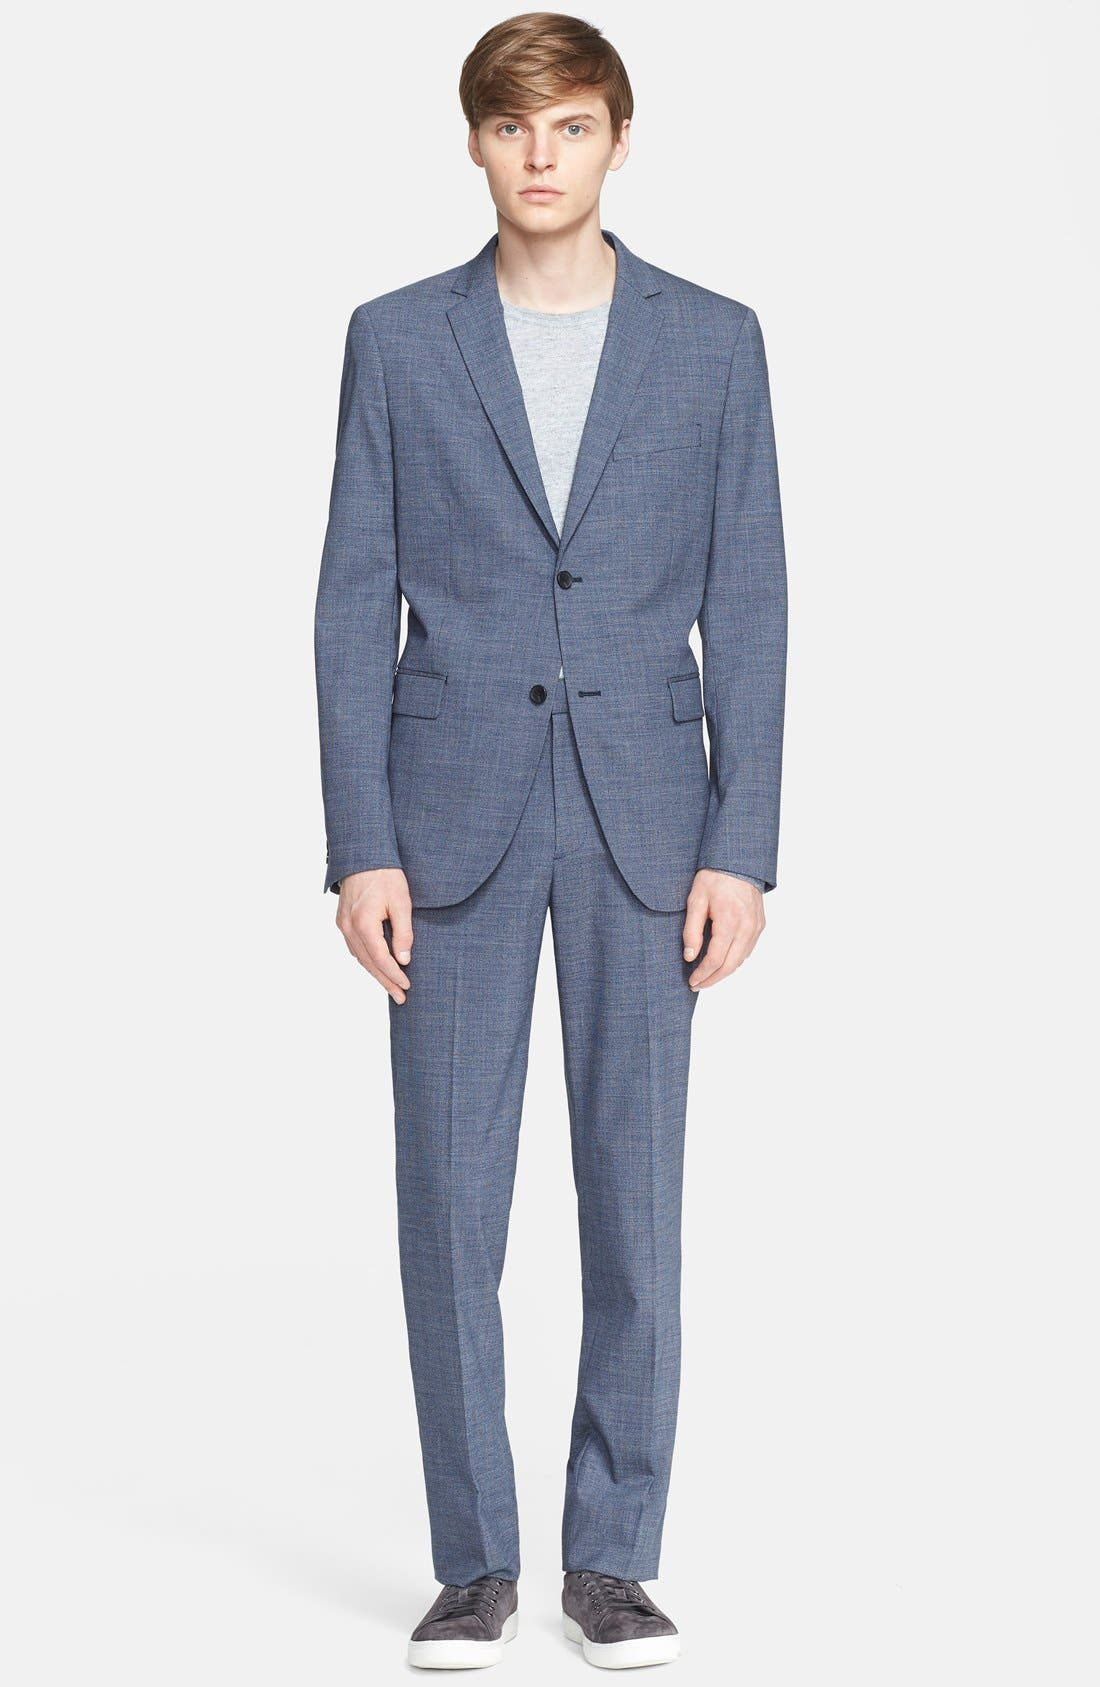 THEORY, 'Jake' Stretch Wool Trousers, Alternate thumbnail 5, color, 462